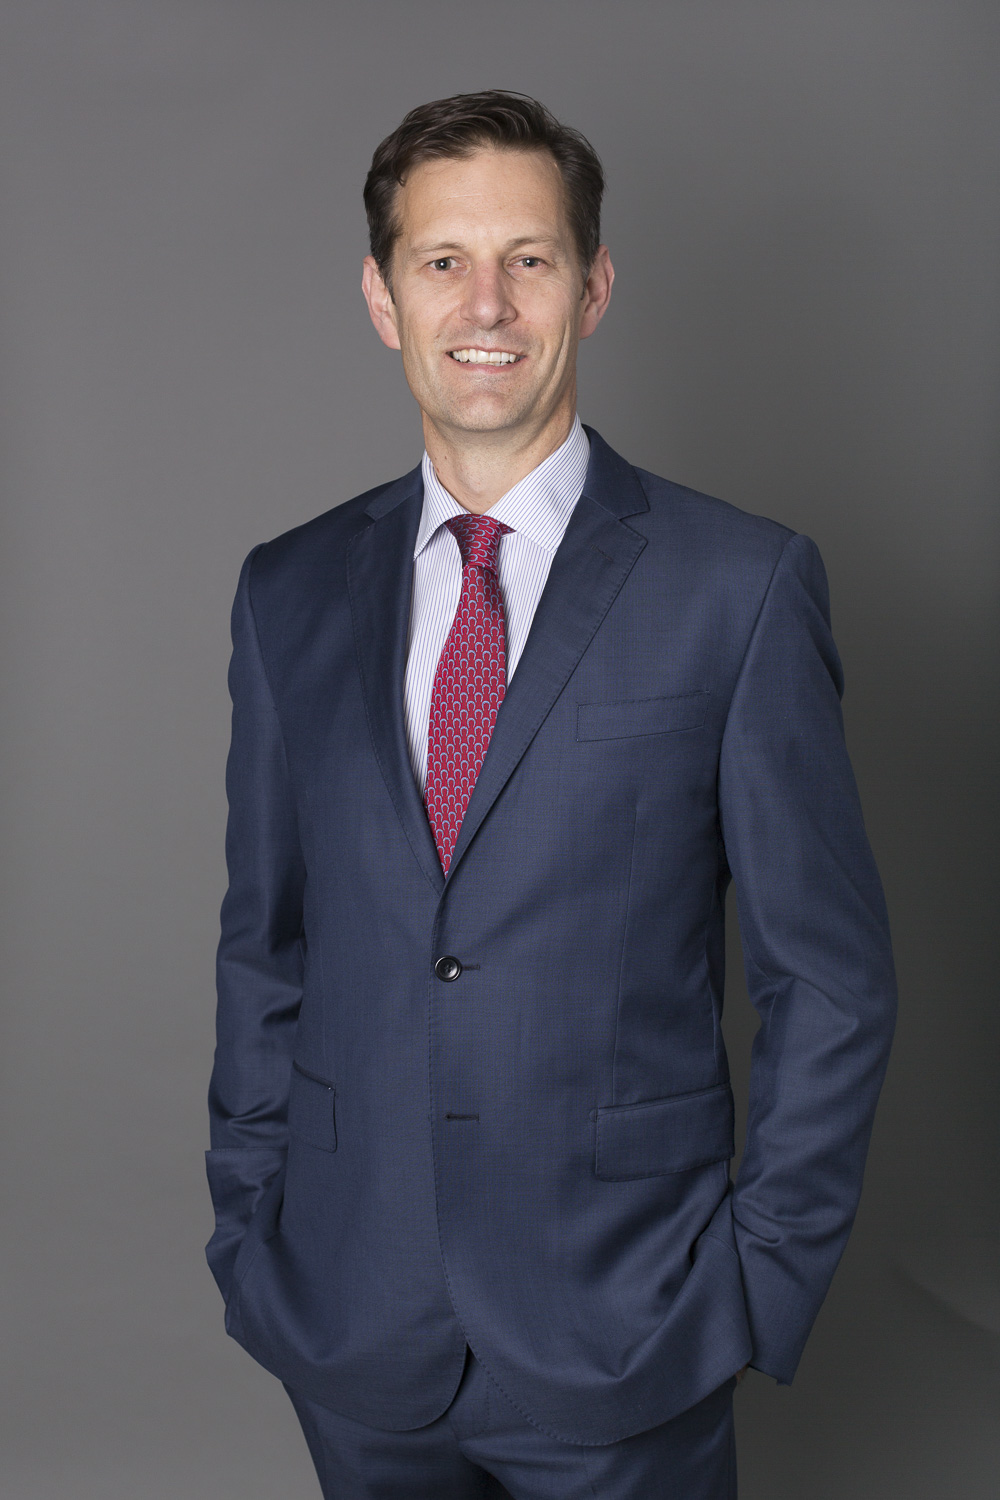 Rob Elliott, Orthopaedic Surgeon, Shoulder, Hip, Knee and Elbow Specialist